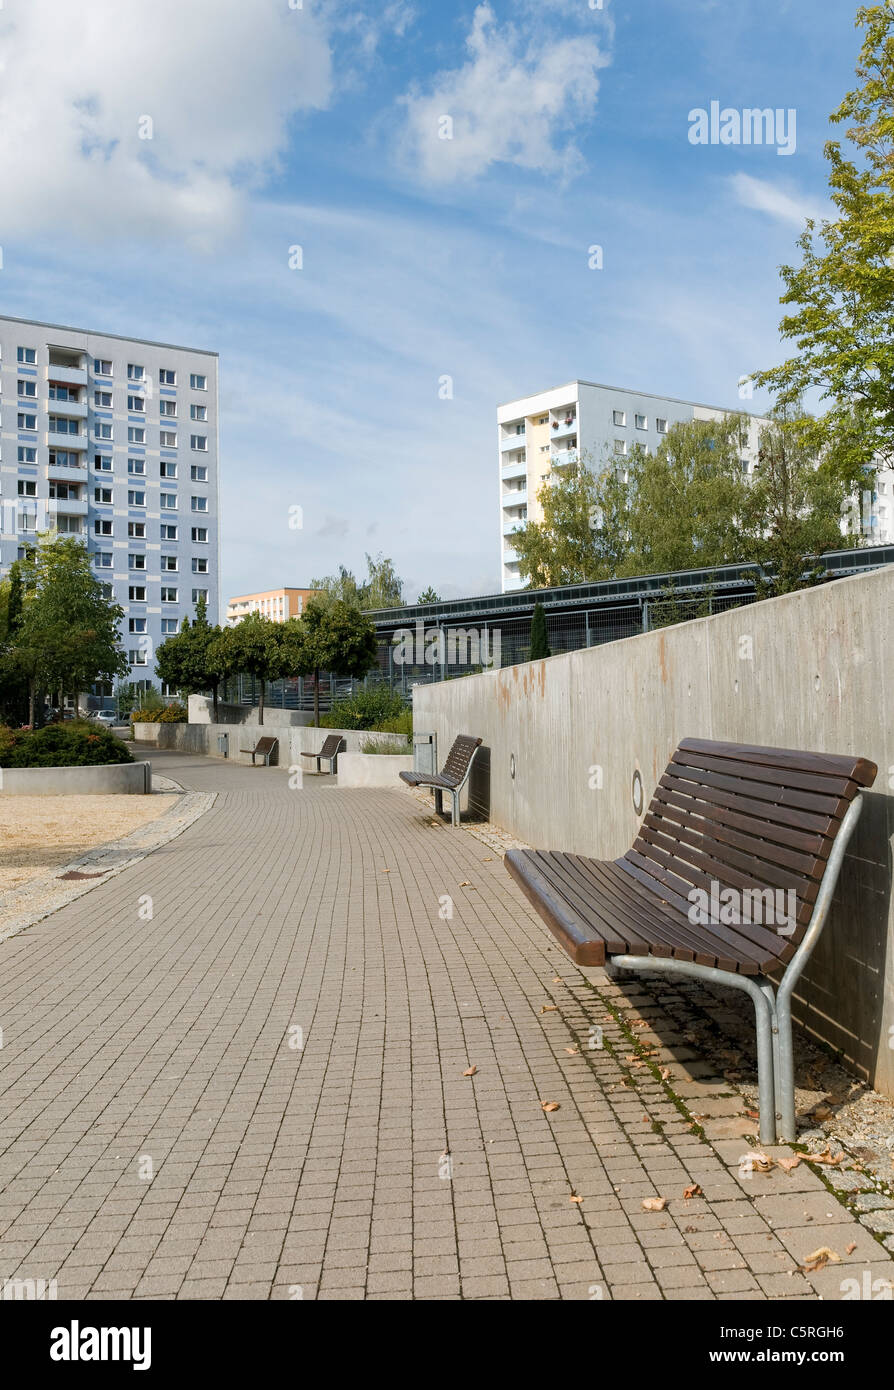 Park, Plattenbau, pre-fabricated concrete buildings, social housing, residential estate, Jena, Thuringia, Germany, - Stock Image